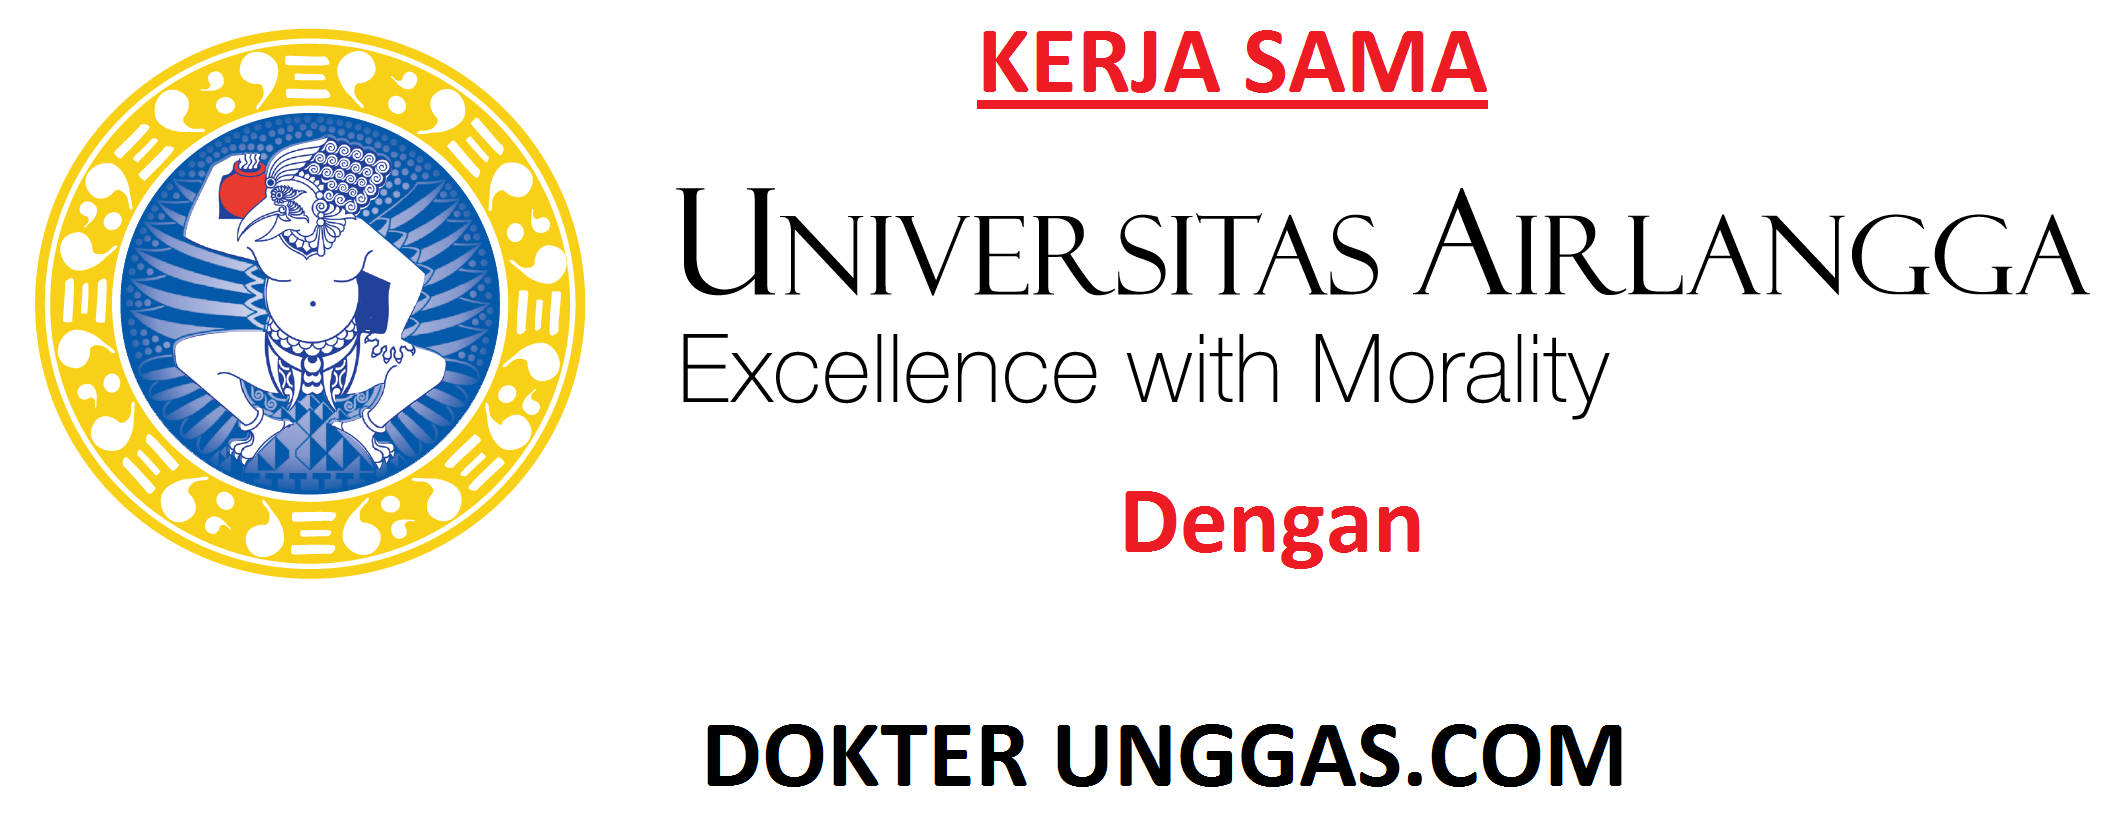 KERJA SAMA DENGAN UNAIR